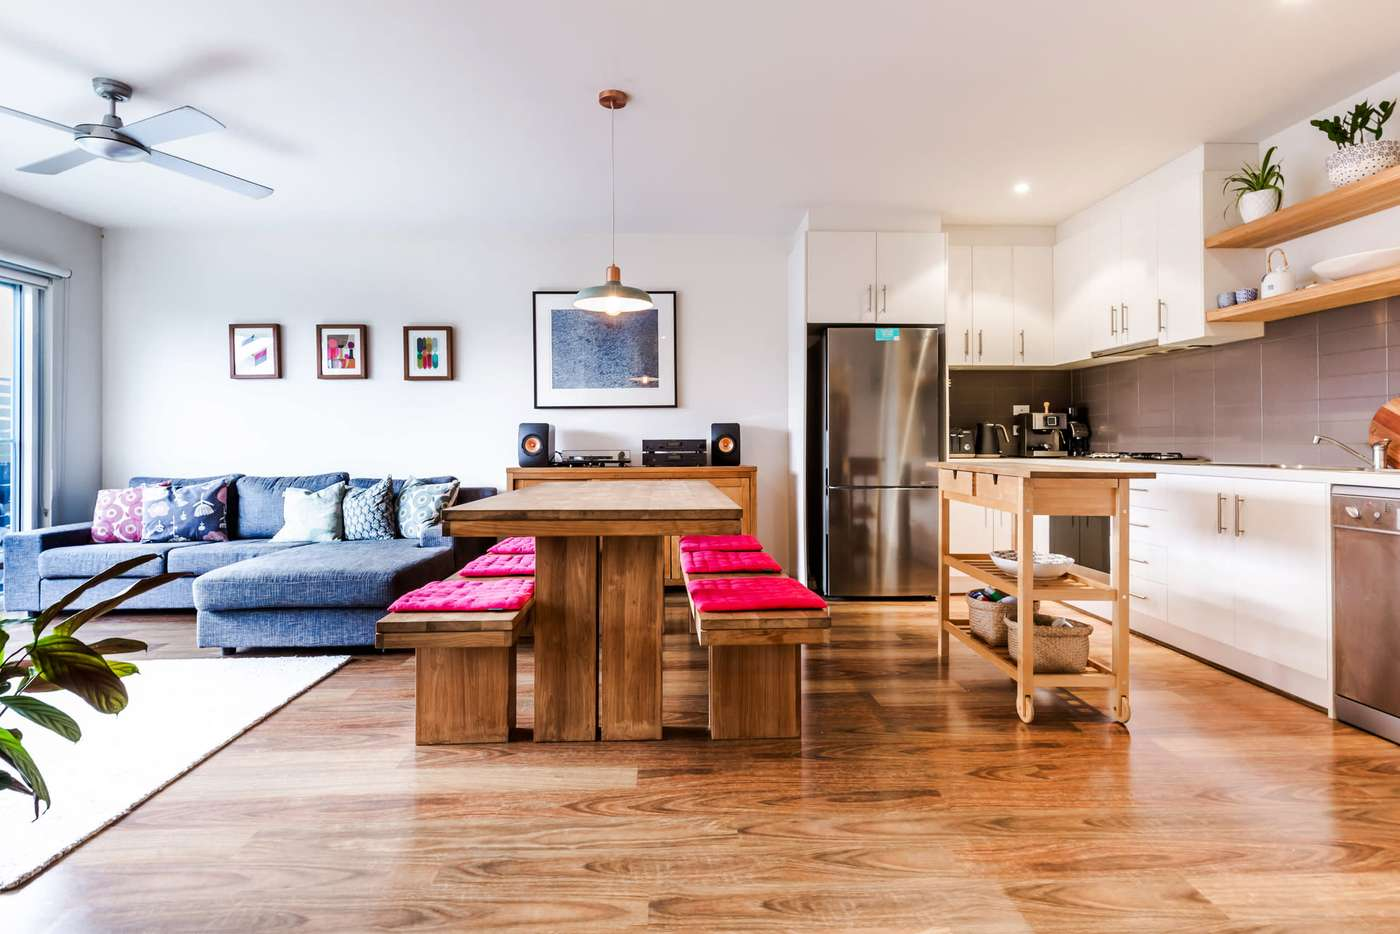 Main view of Homely apartment listing, 14/23 Pickett Street, Footscray VIC 3011